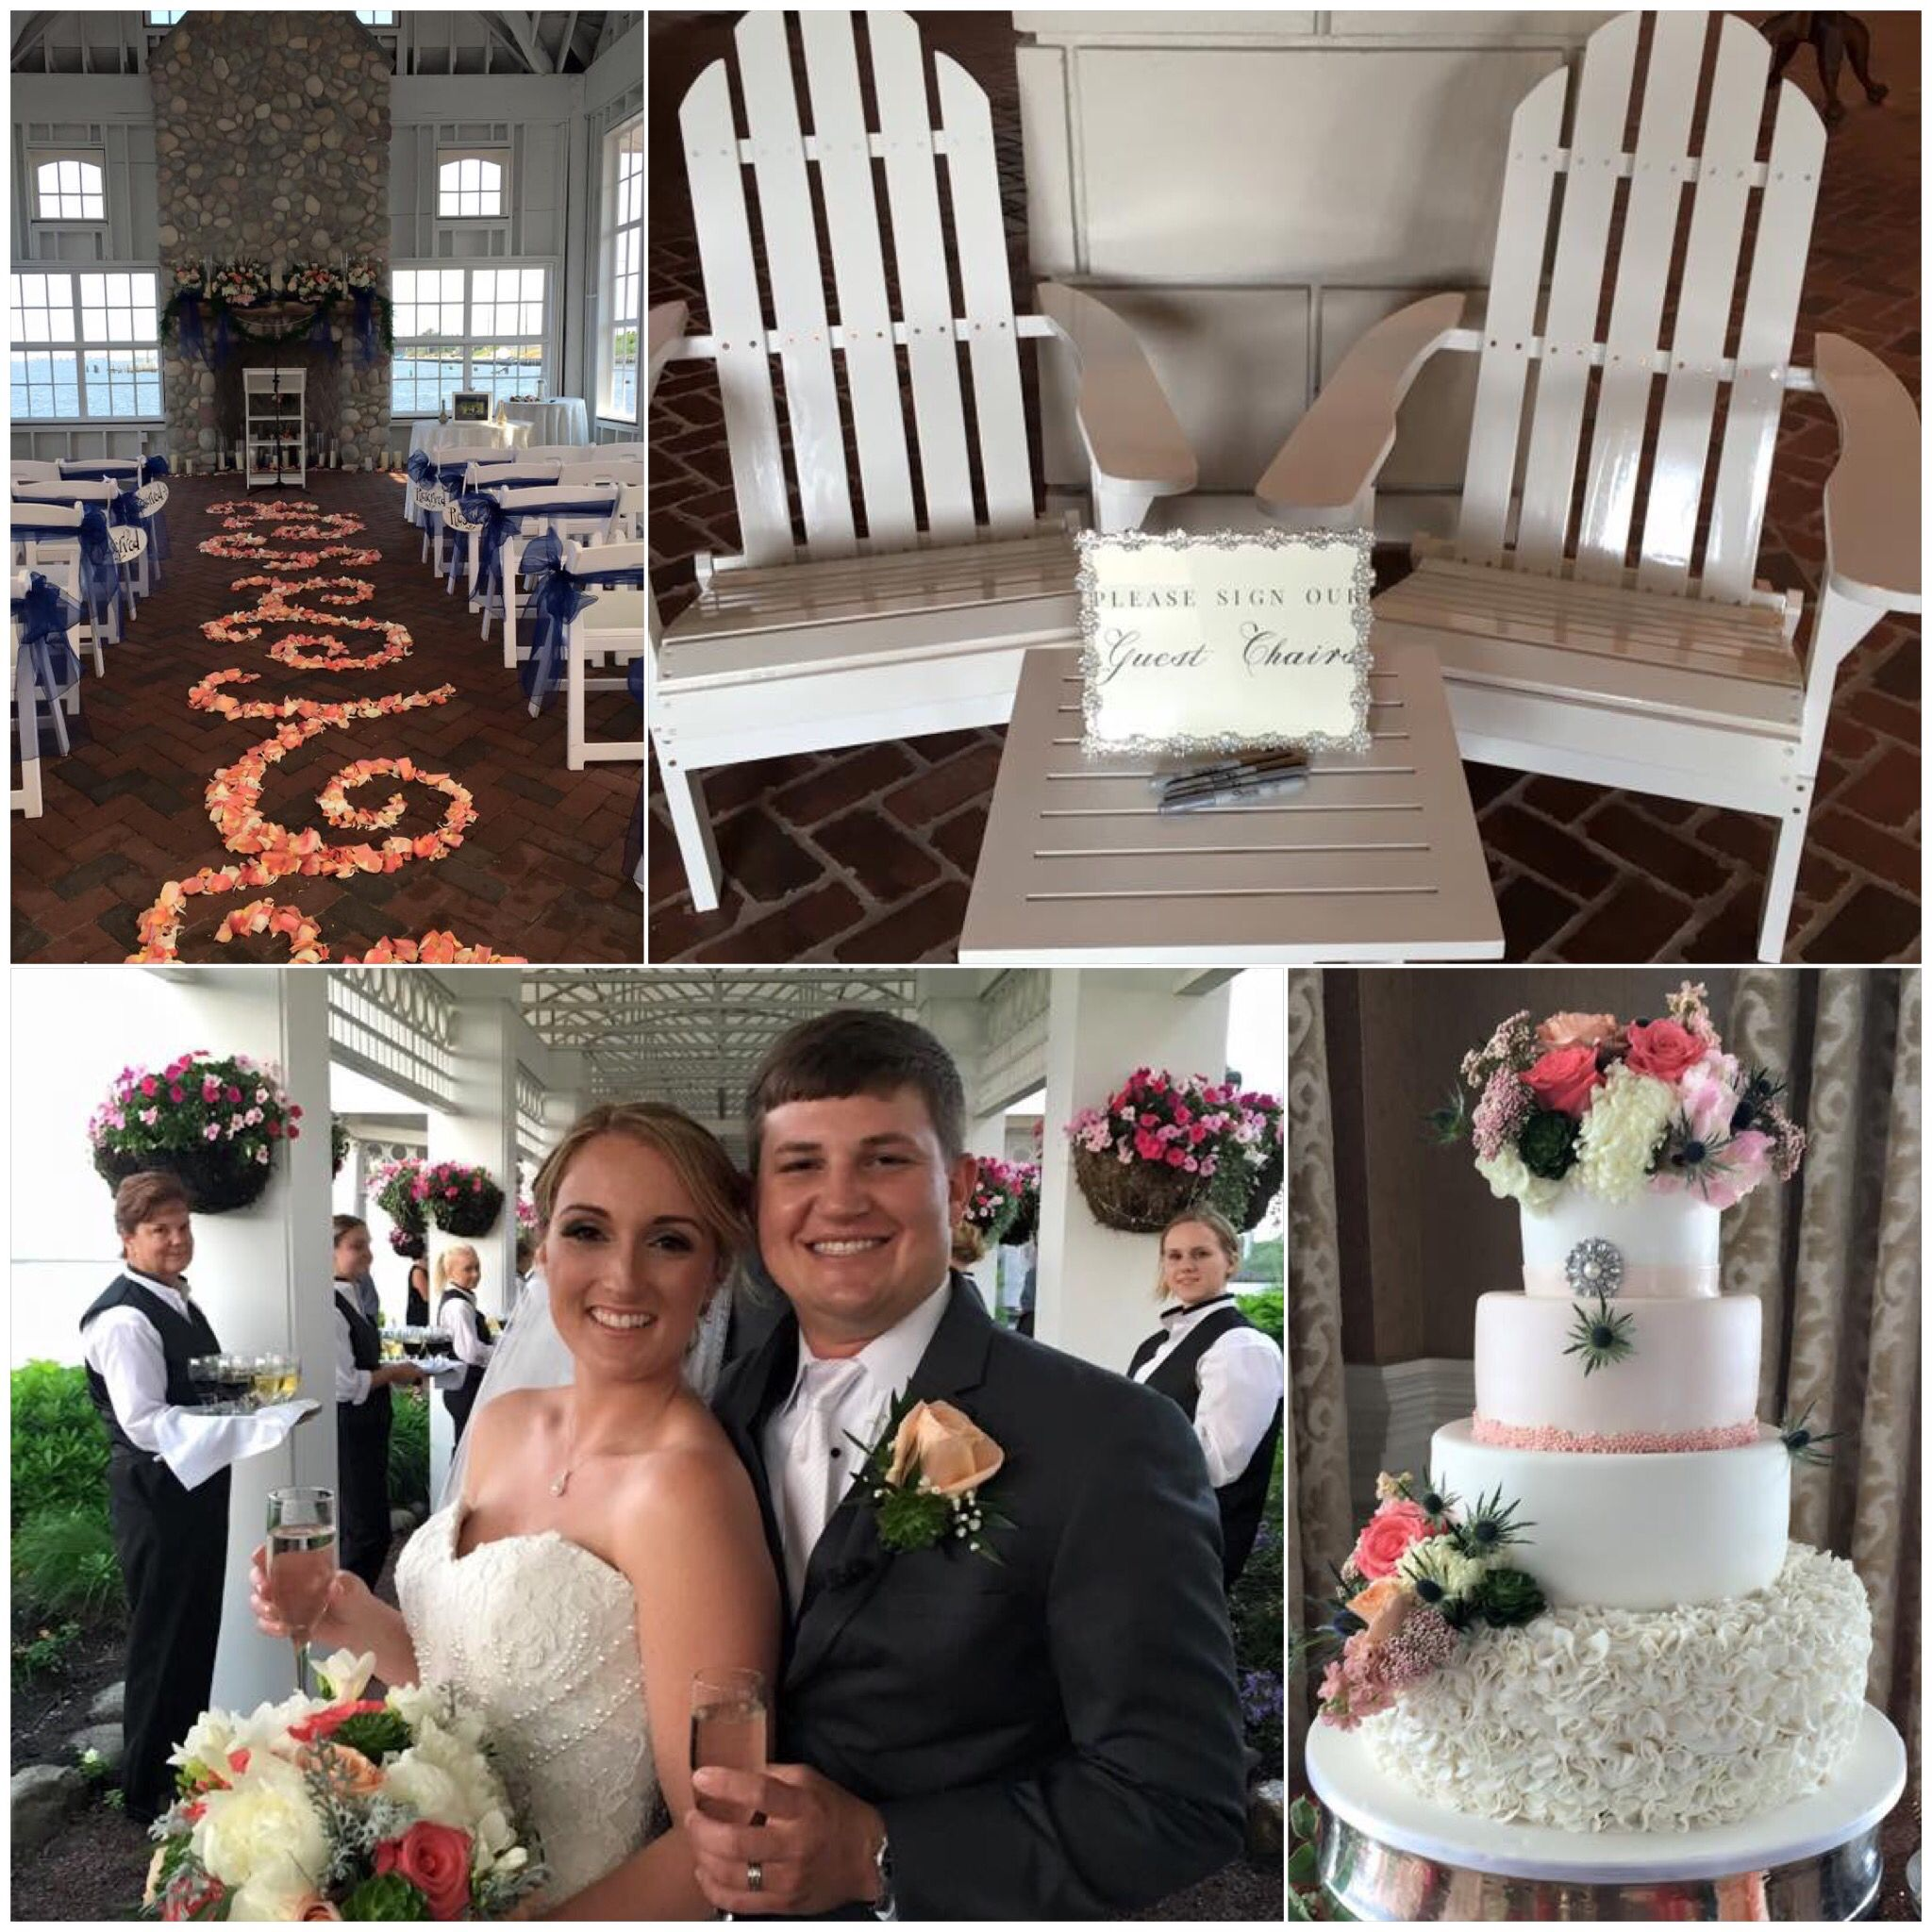 Exclusive Waterfront Wedding: Congratulations To Courtney & Karl On Their Wedding At